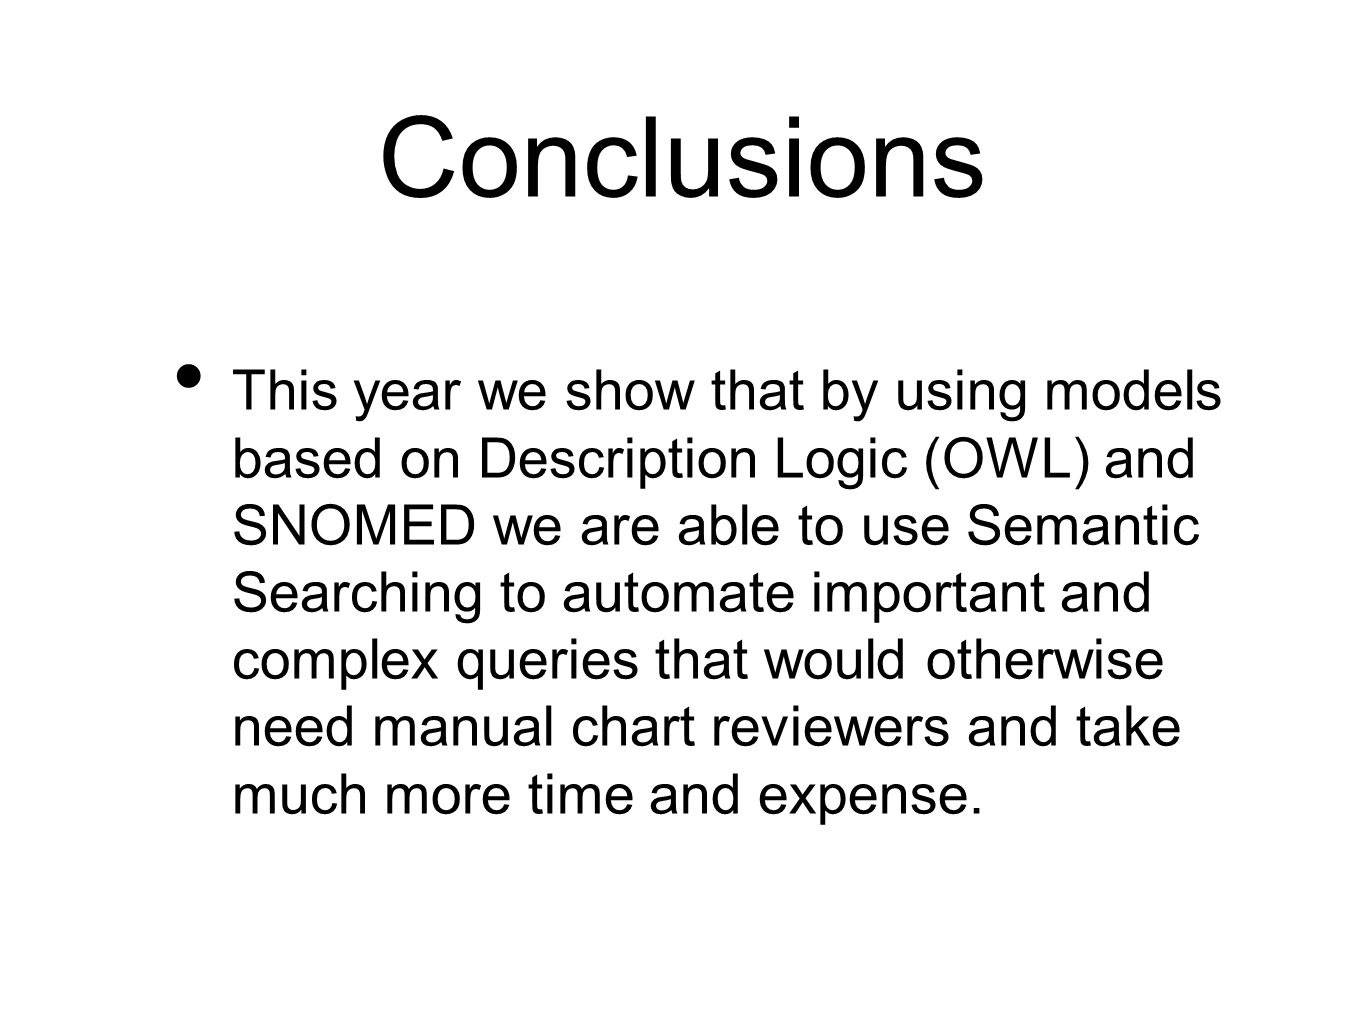 Conclusions This year we show that by using models based on Description Logic (OWL) and SNOMED we are able to use Semantic Searching to automate impor